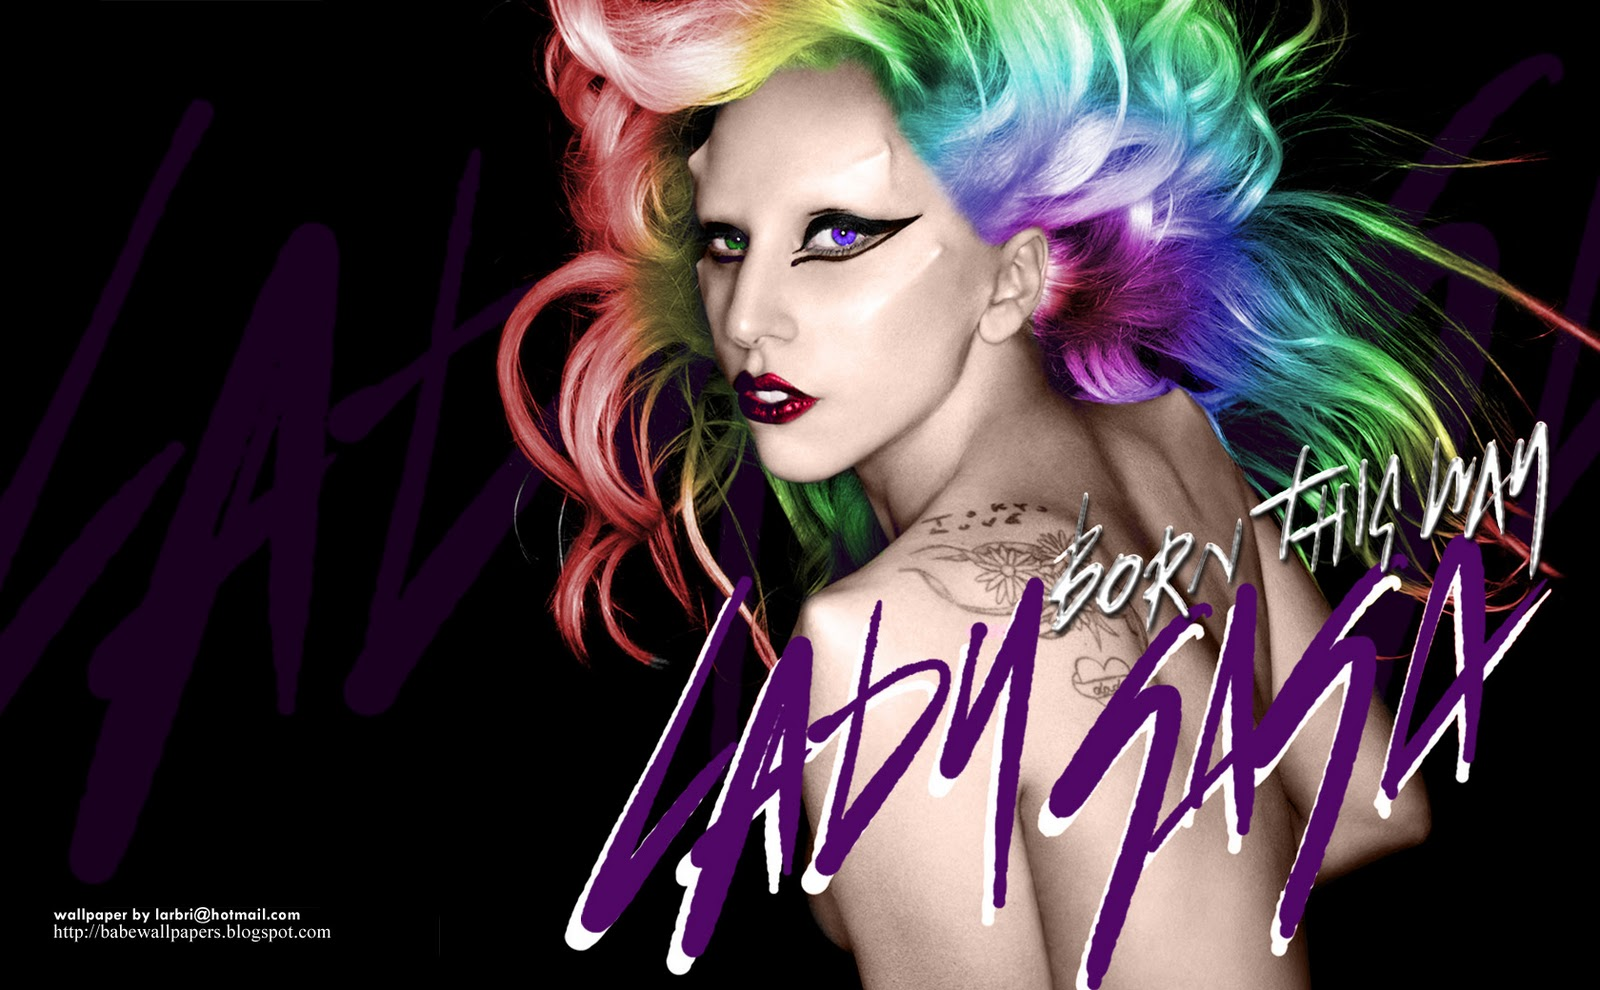 Lady gaga born this way (music album) (download album.